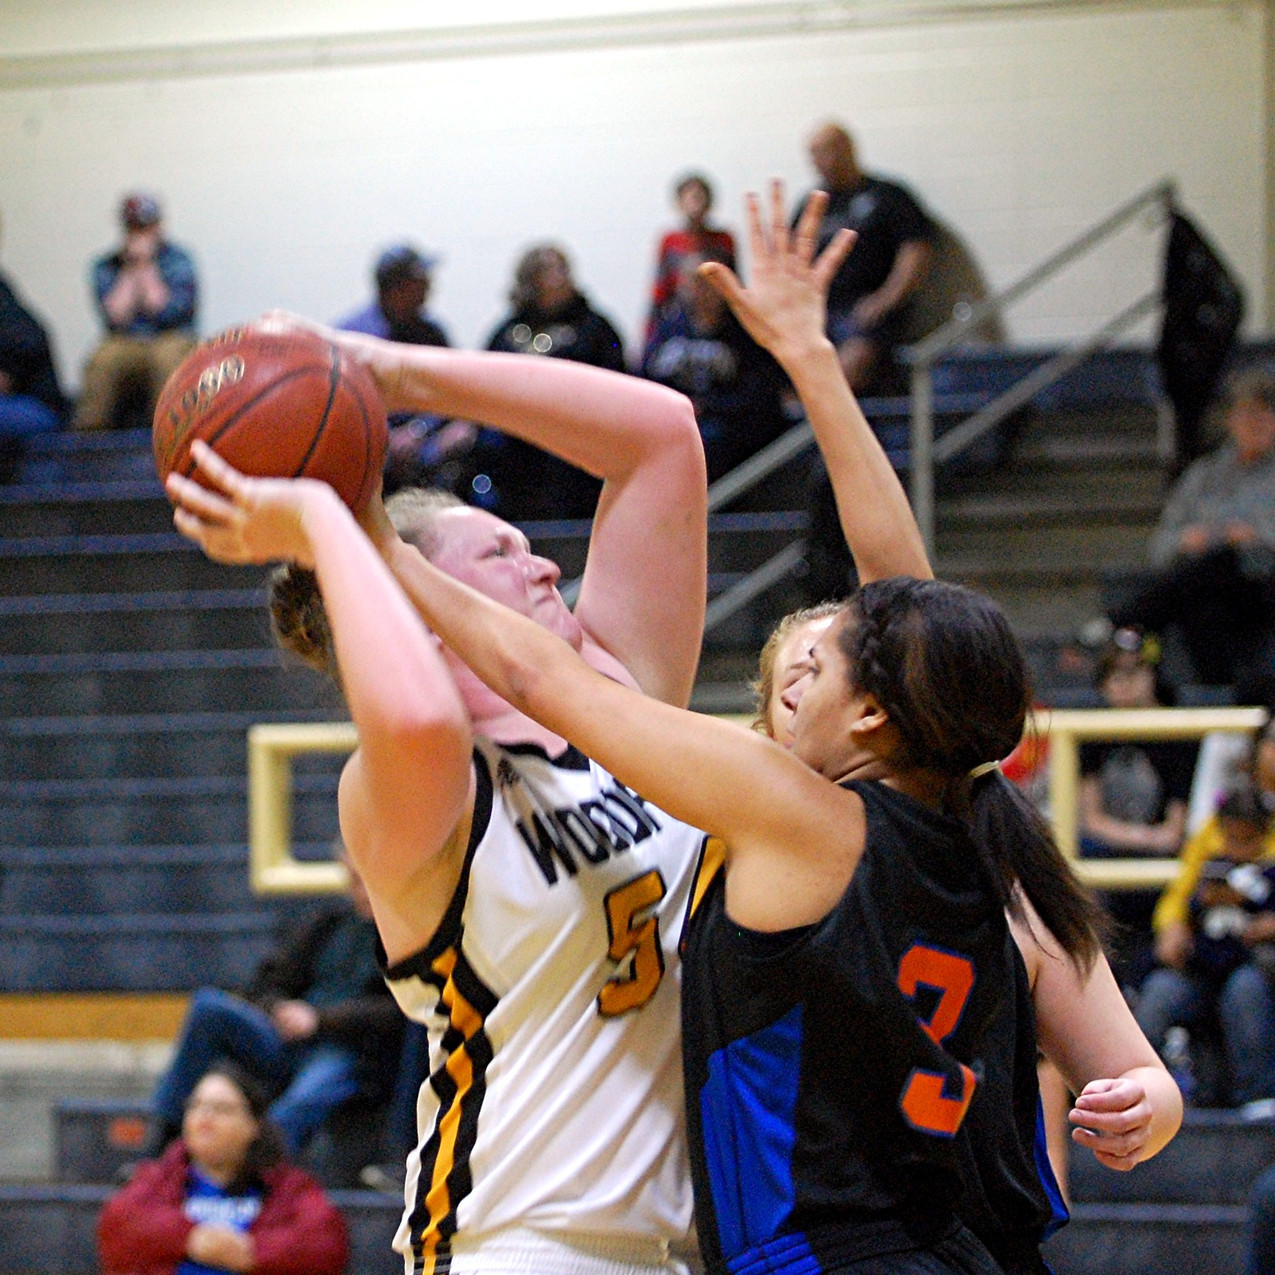 DELANY ENLOW fights to take this shot during Woodford's game against Frankfort at home in The Hive on Saturday, Jan. 28. Enlow had a double-double in the game, scoring 20 points and pulling down 16 rebounds, to help the Lady Jackets win the game 60-40. (Photo by Rick Capone)